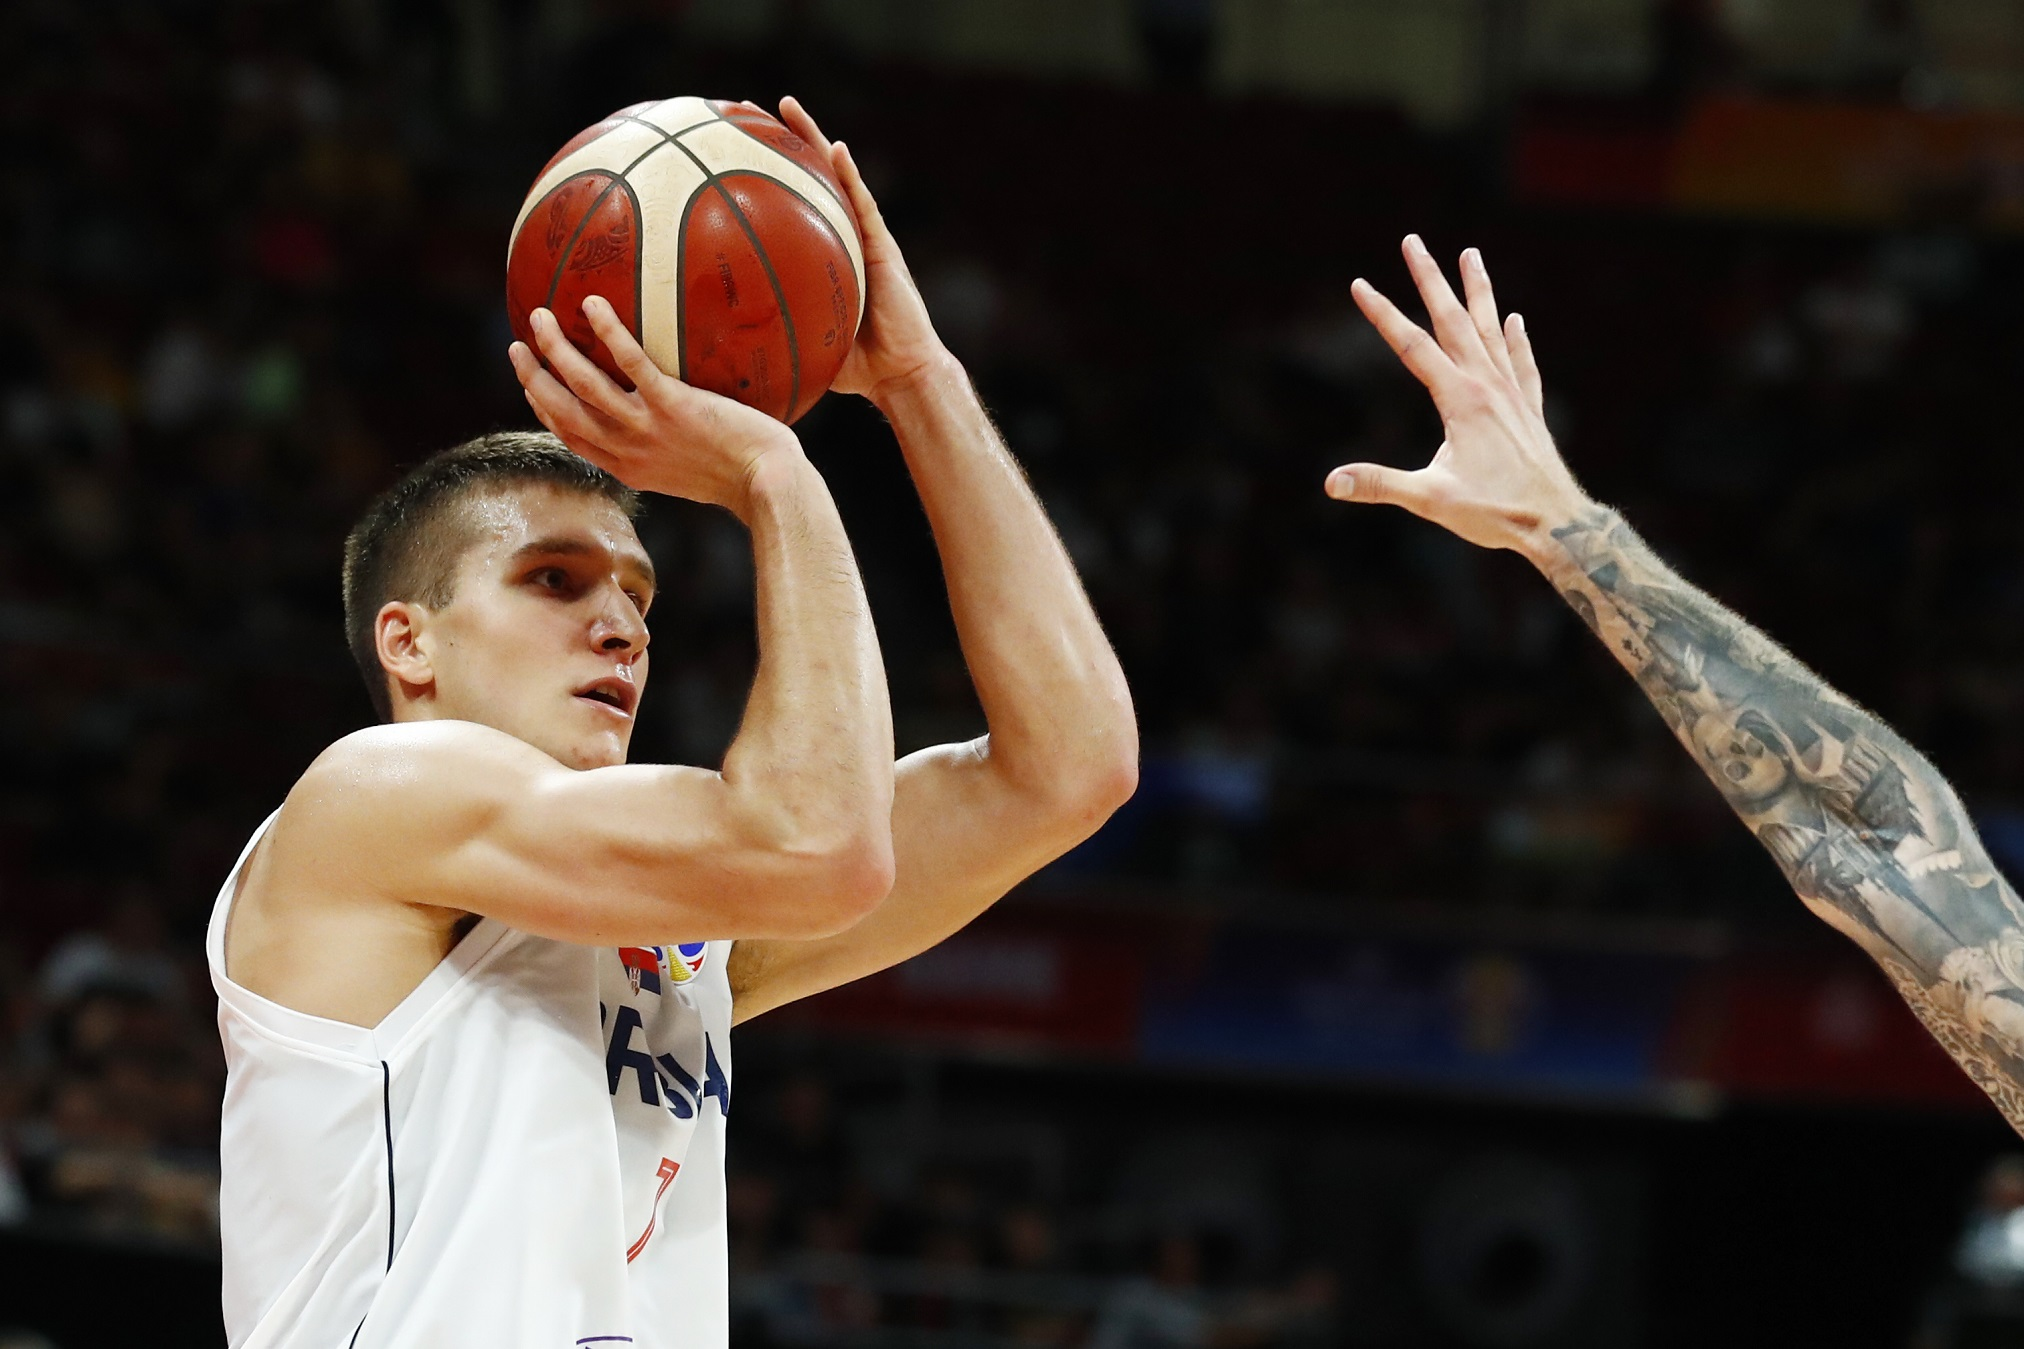 Basketball - FIBA World Cup - Classification Games 5-6 - Serbia v Czech Republic - Wukesong Sport Arena, Beijing, China - September 14, 2019 Serbia's Bogdan Bogdanovic in action REUTERS/Thomas Peter